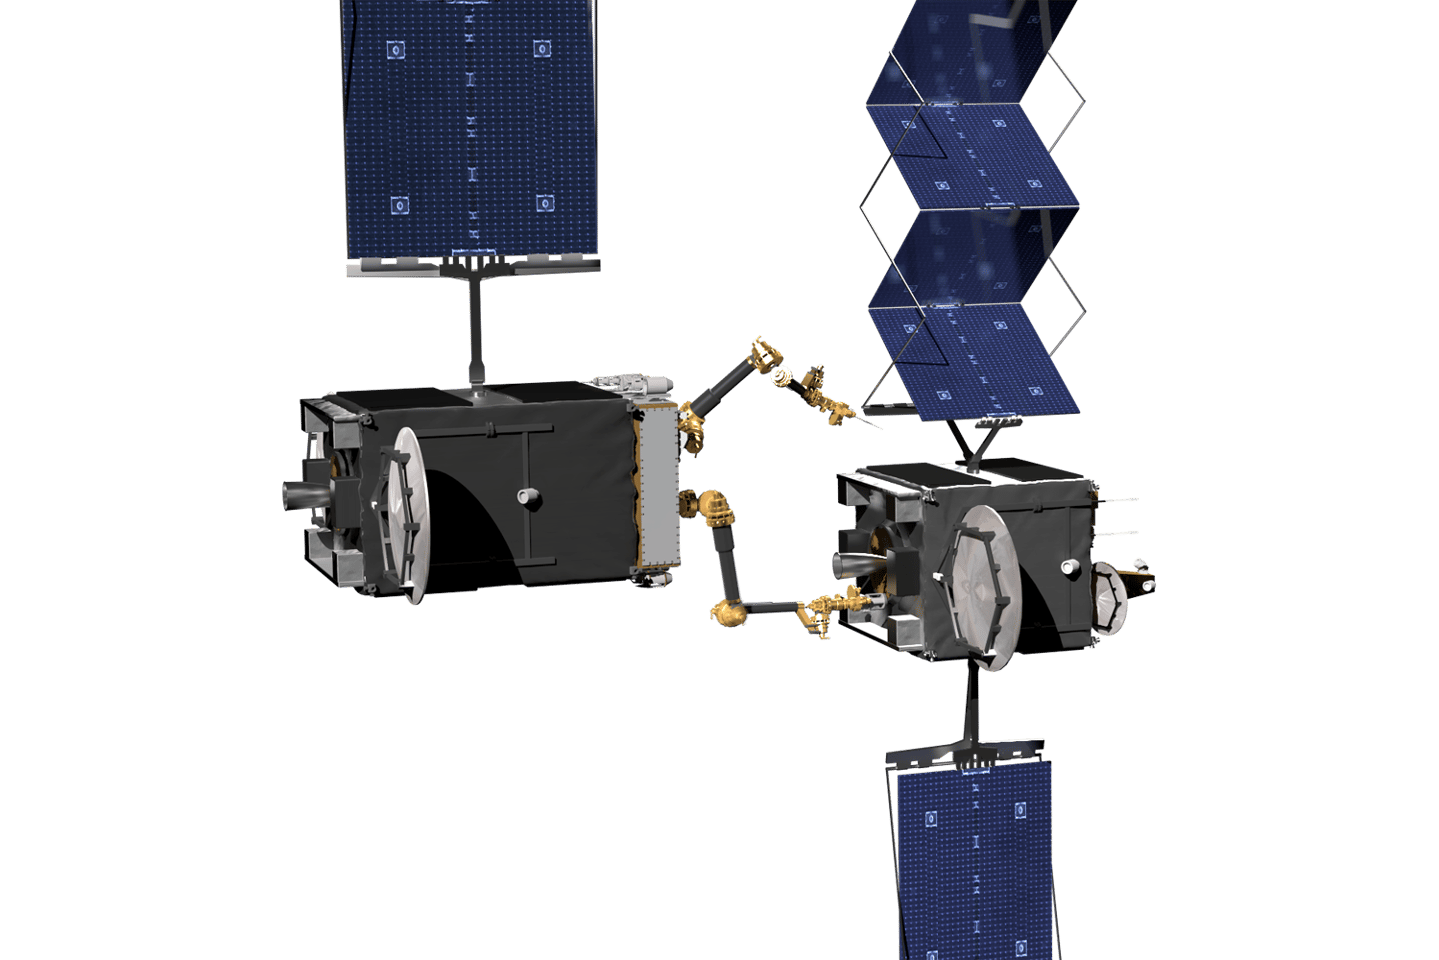 Artist's concept of the RSGS system as it resolves a solar array deployment problem on a client spacecraft in geosynchronous orbit